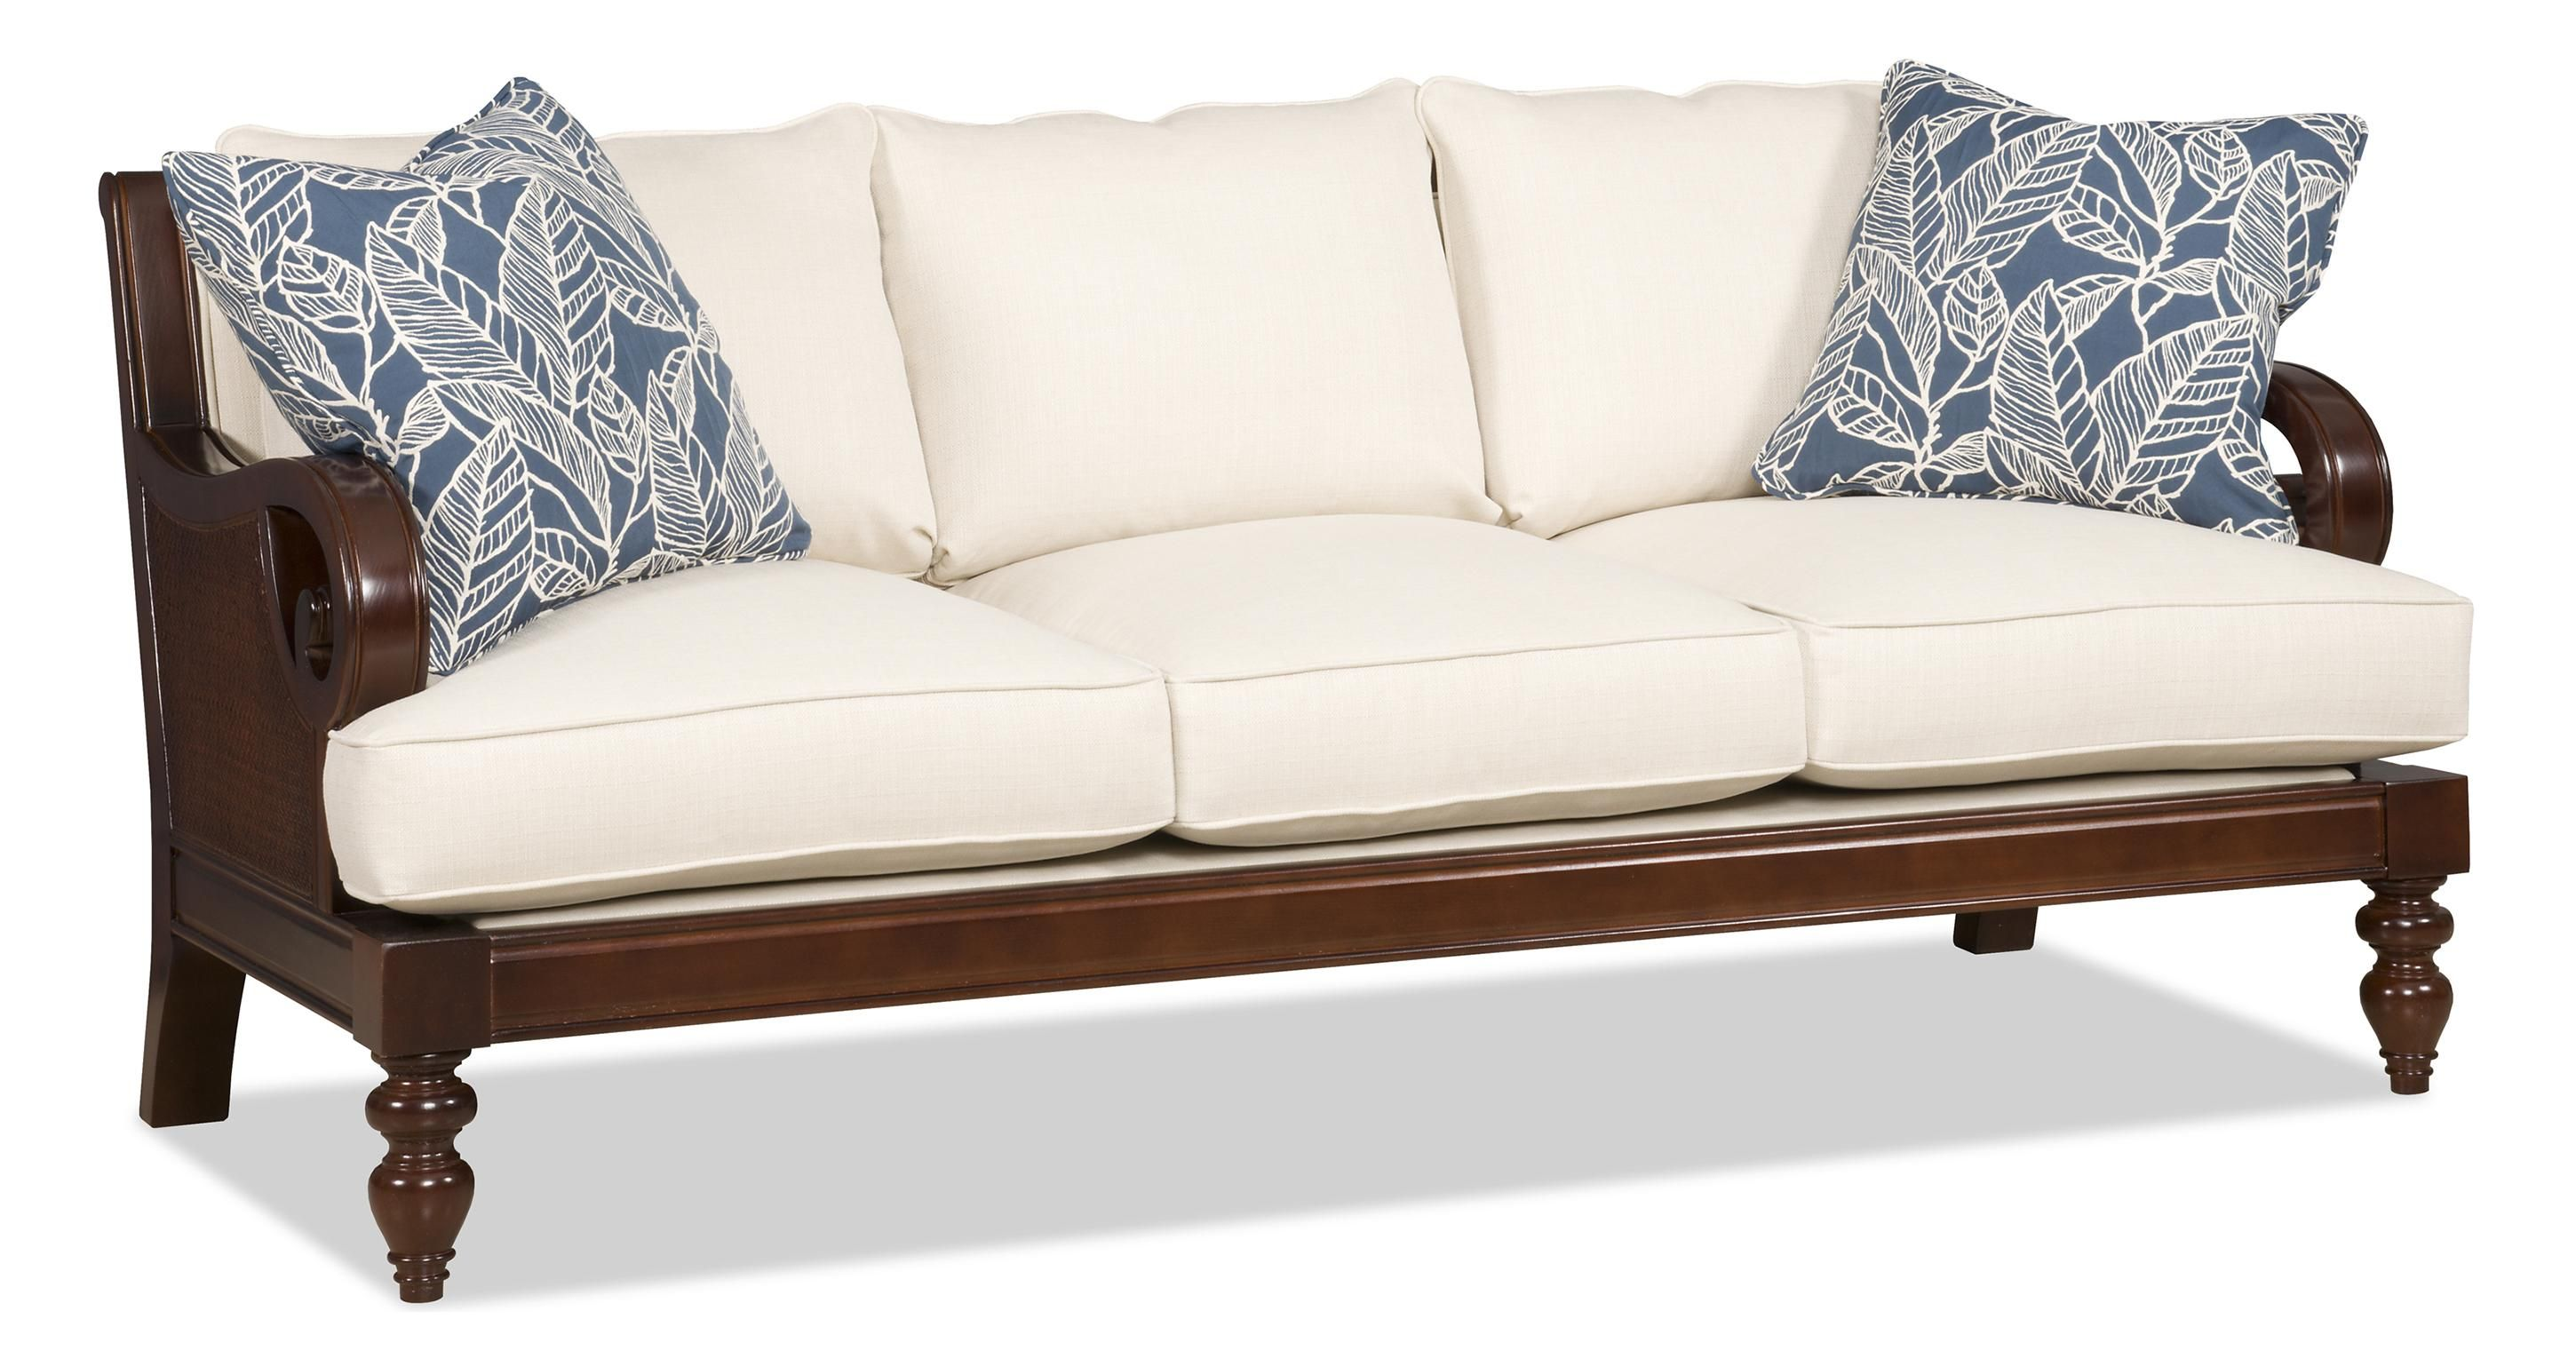 Tropical Sofa With Exposed Wood And Scrolled Arms This